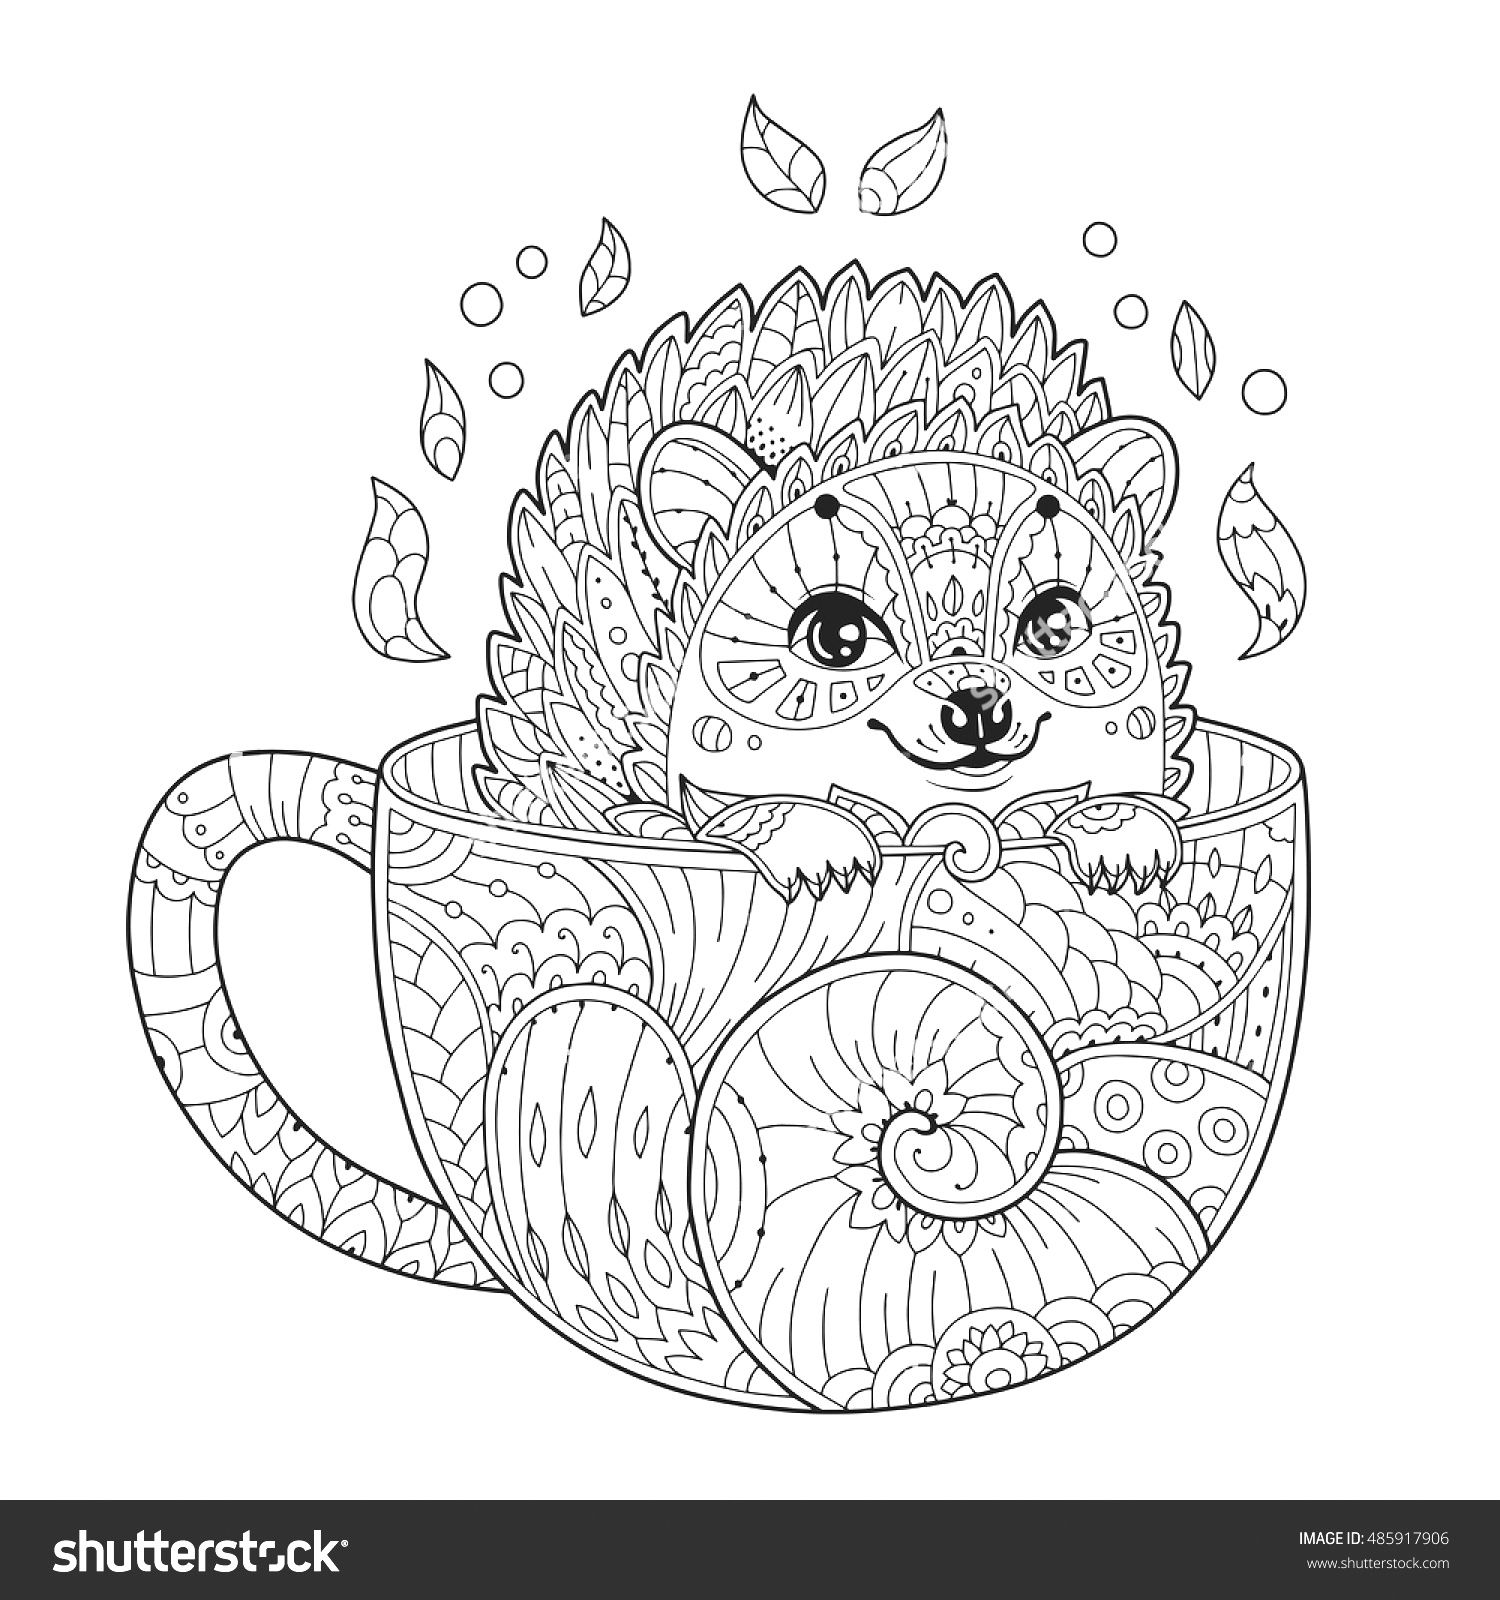 Hedgehog In A Tea Cup Animal Coloring Pages Mandala Coloring Antistress Coloring